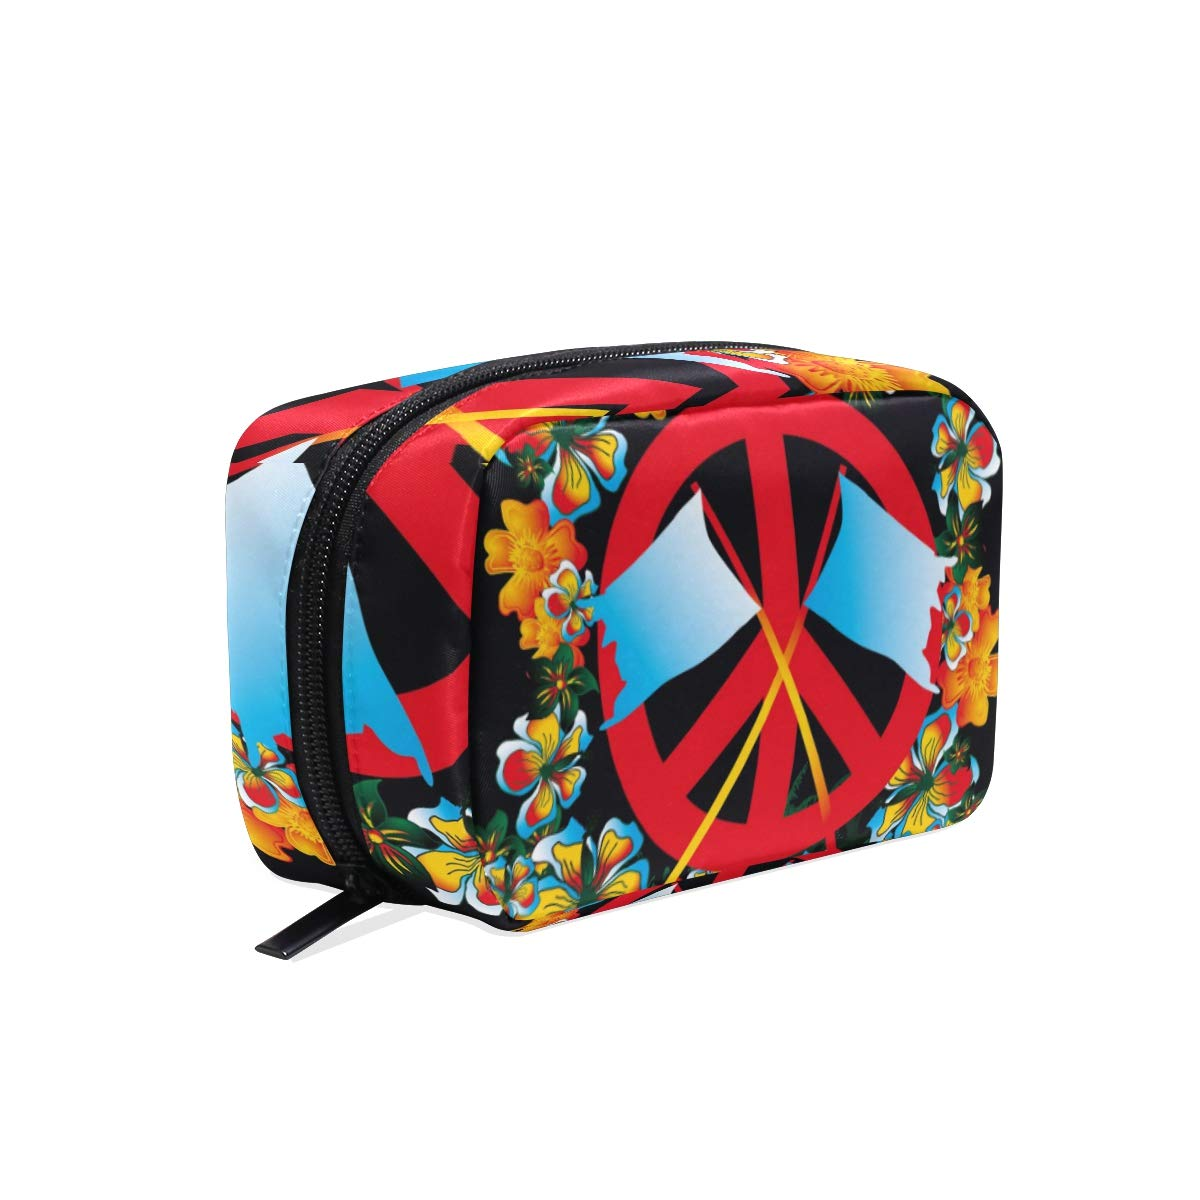 Makeup Bag Portable Travel Cosmetic Flower And Peace Train Case Toiletry Bag Organizer Accessories Case Tools Case for Beauty Women